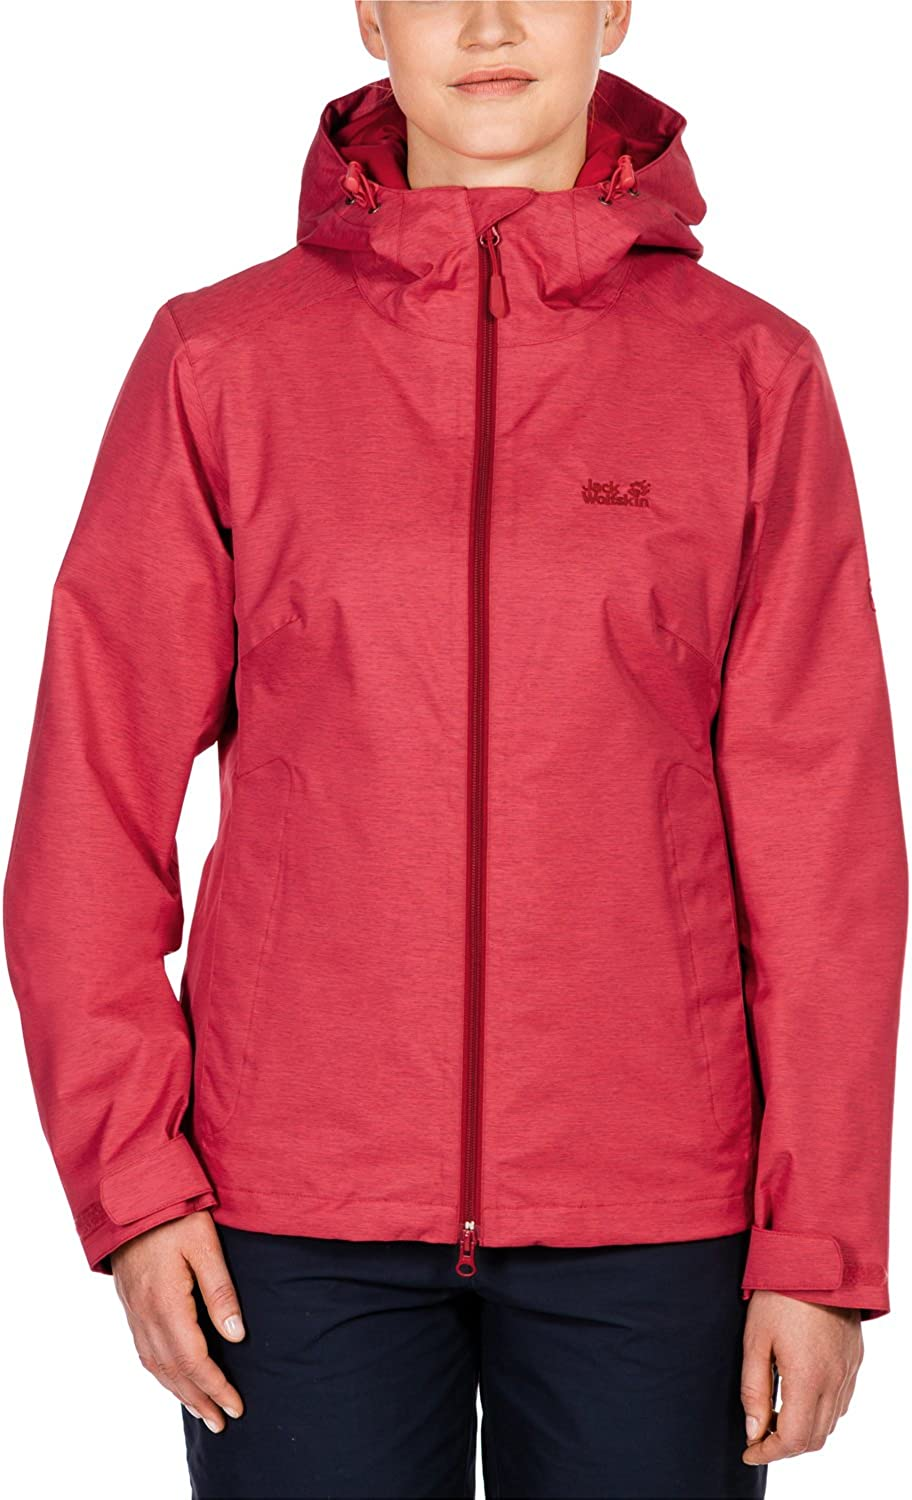 Jack Wolfskin Women's Northern Sky Jacket